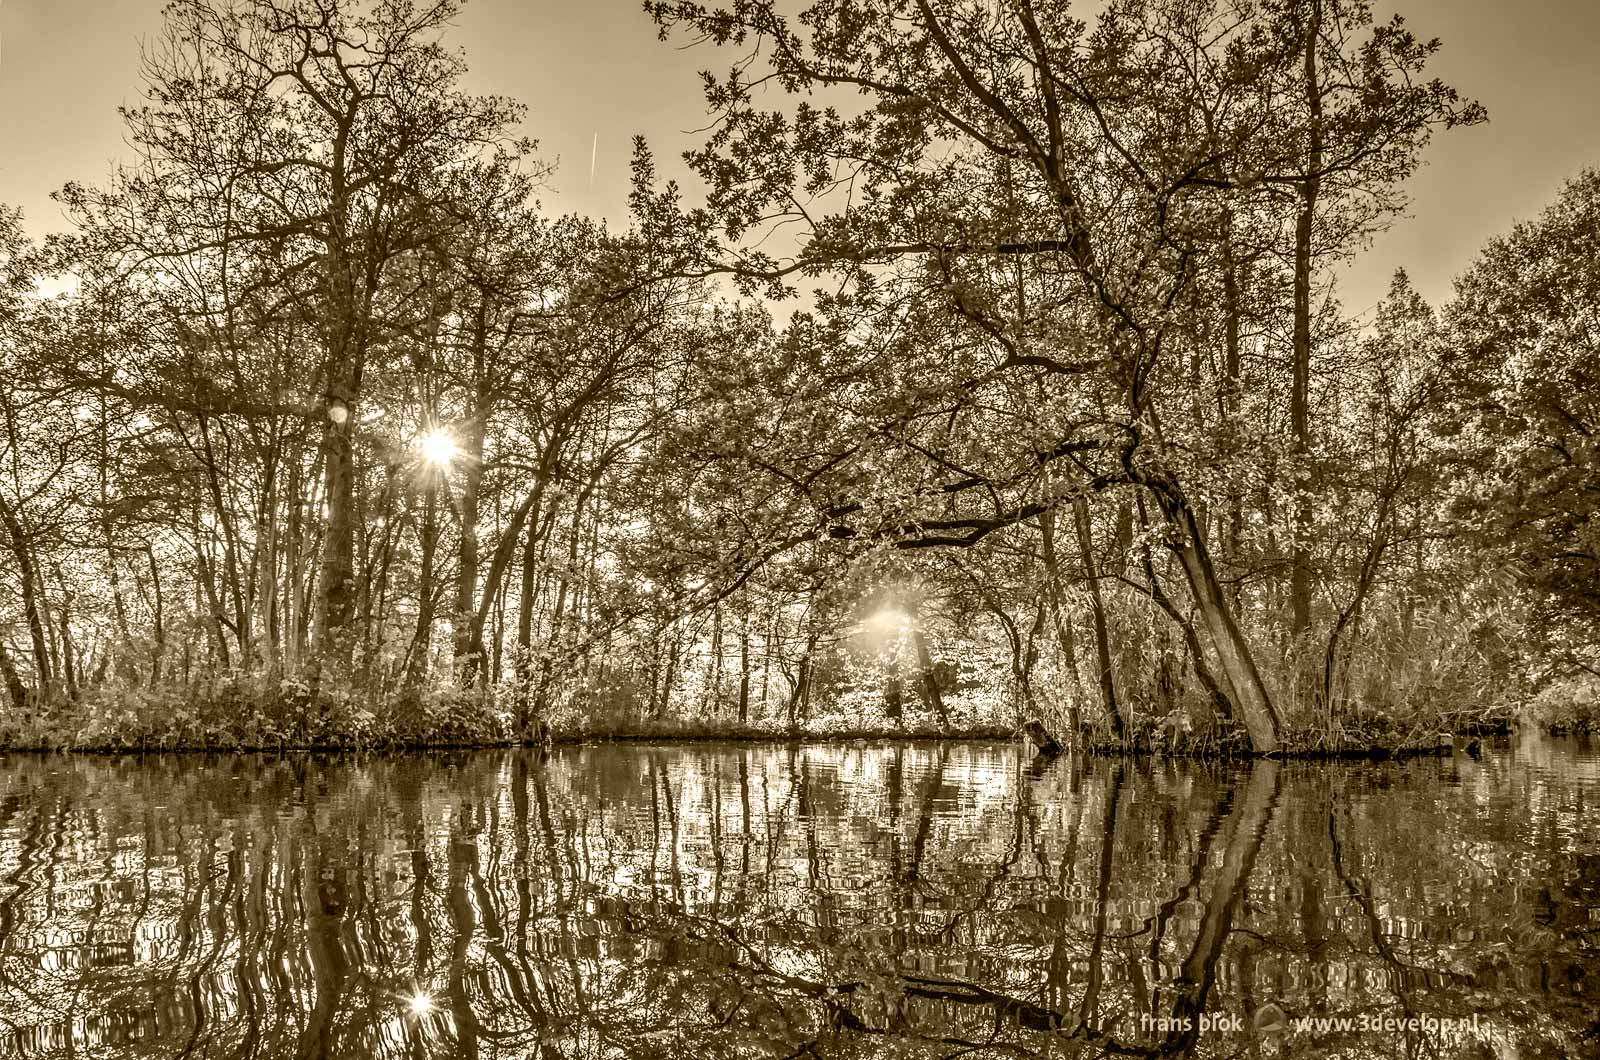 Black and white photo of the autumn in the Brediuspark in Woerden, The Netherlands with a low sun and the reflection of trees on the water surface, with a sepia tint applied in Photoshop